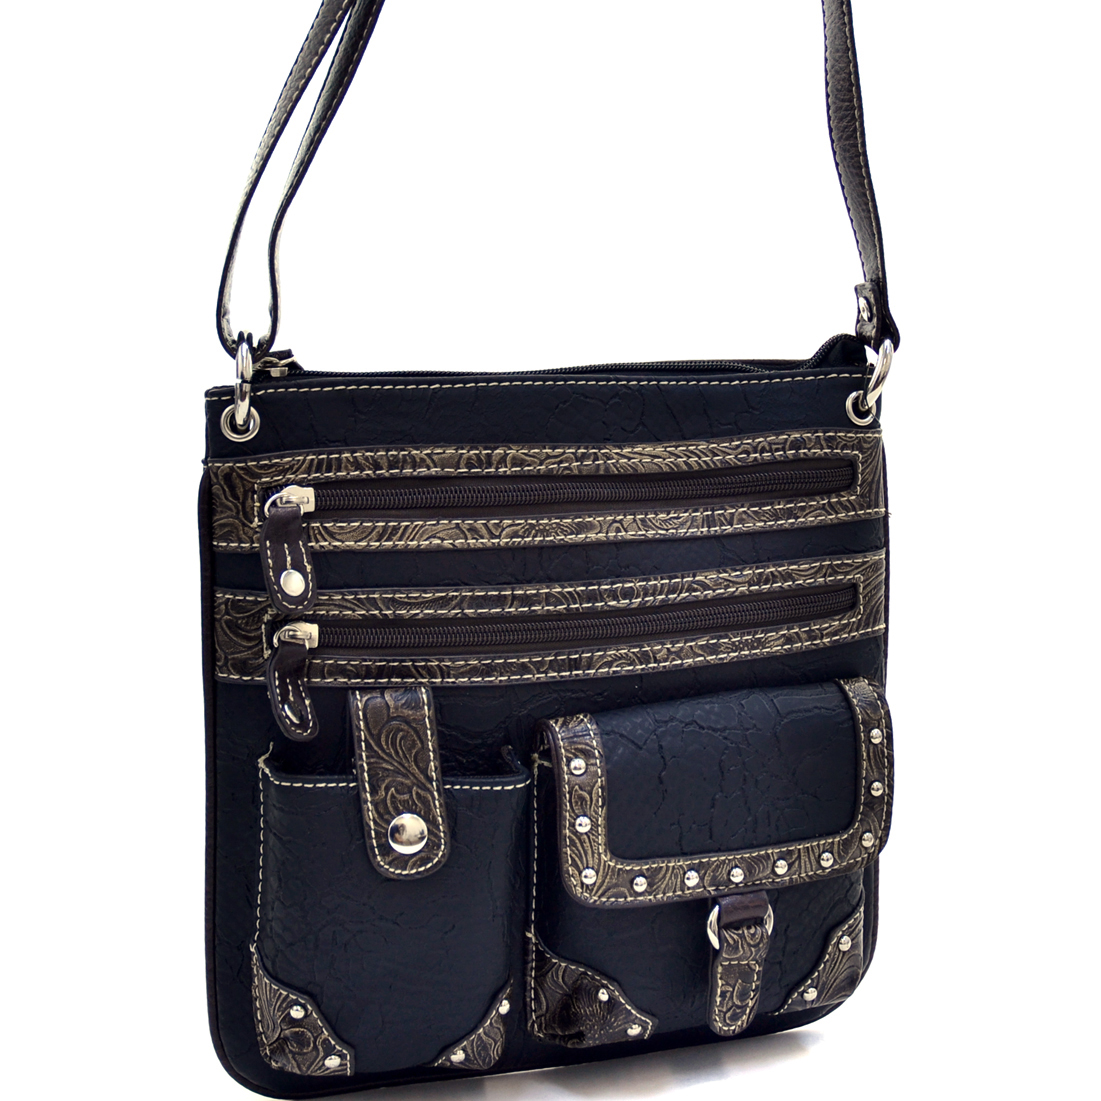 Classic Western Messenger Bag With Floral Texture Trim